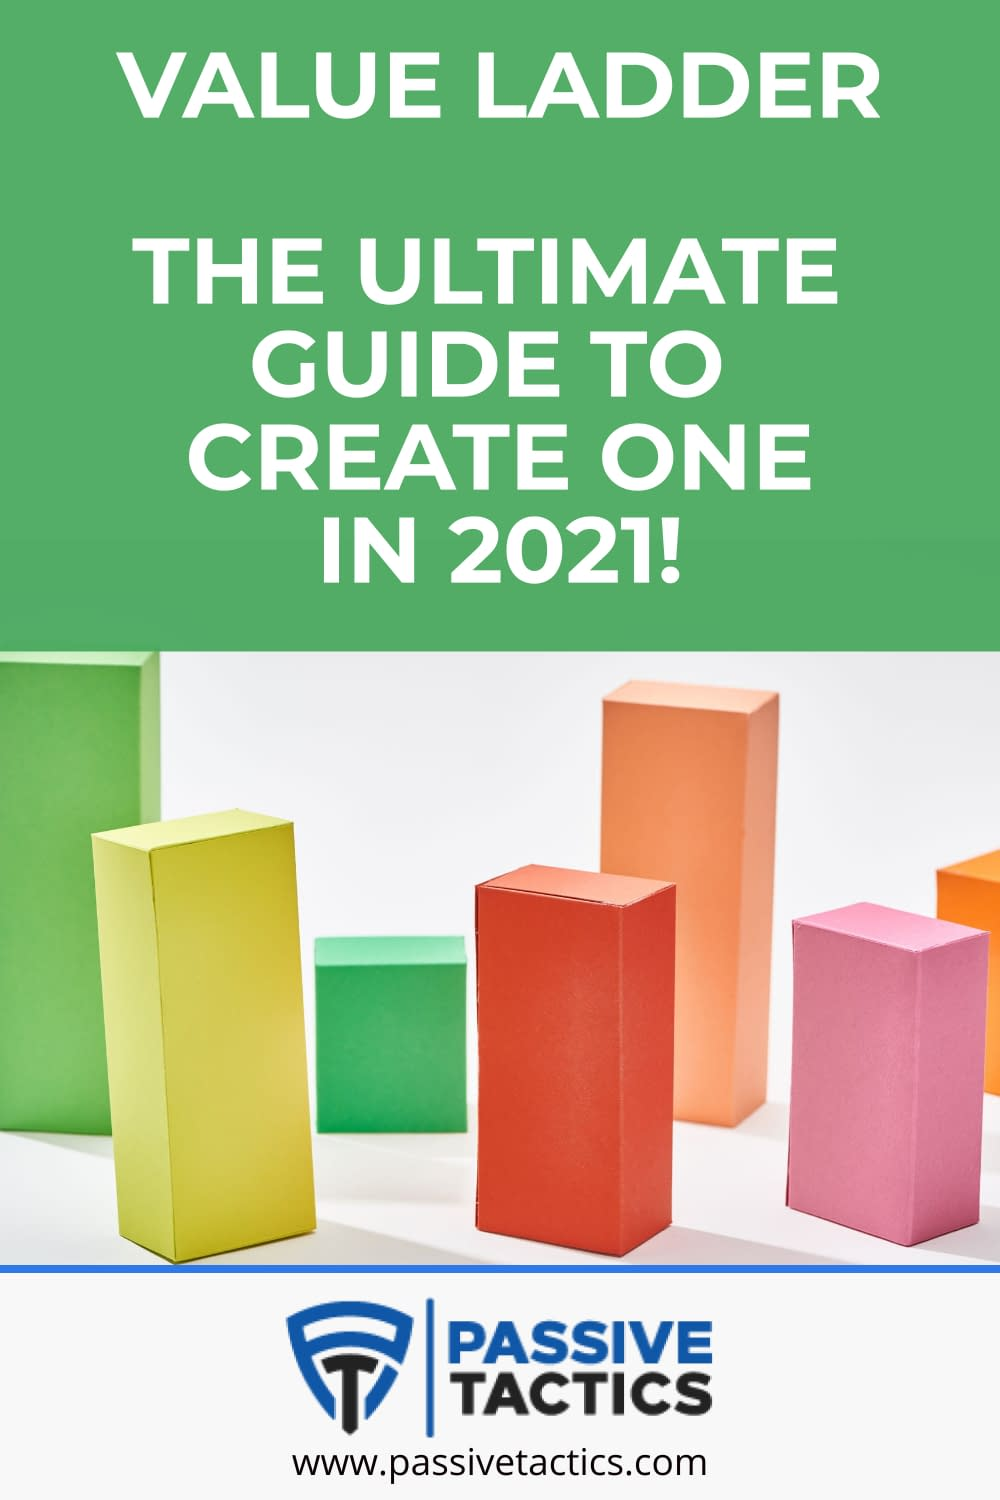 Value Ladder: The Ultimate Guide To Create One In 2021!